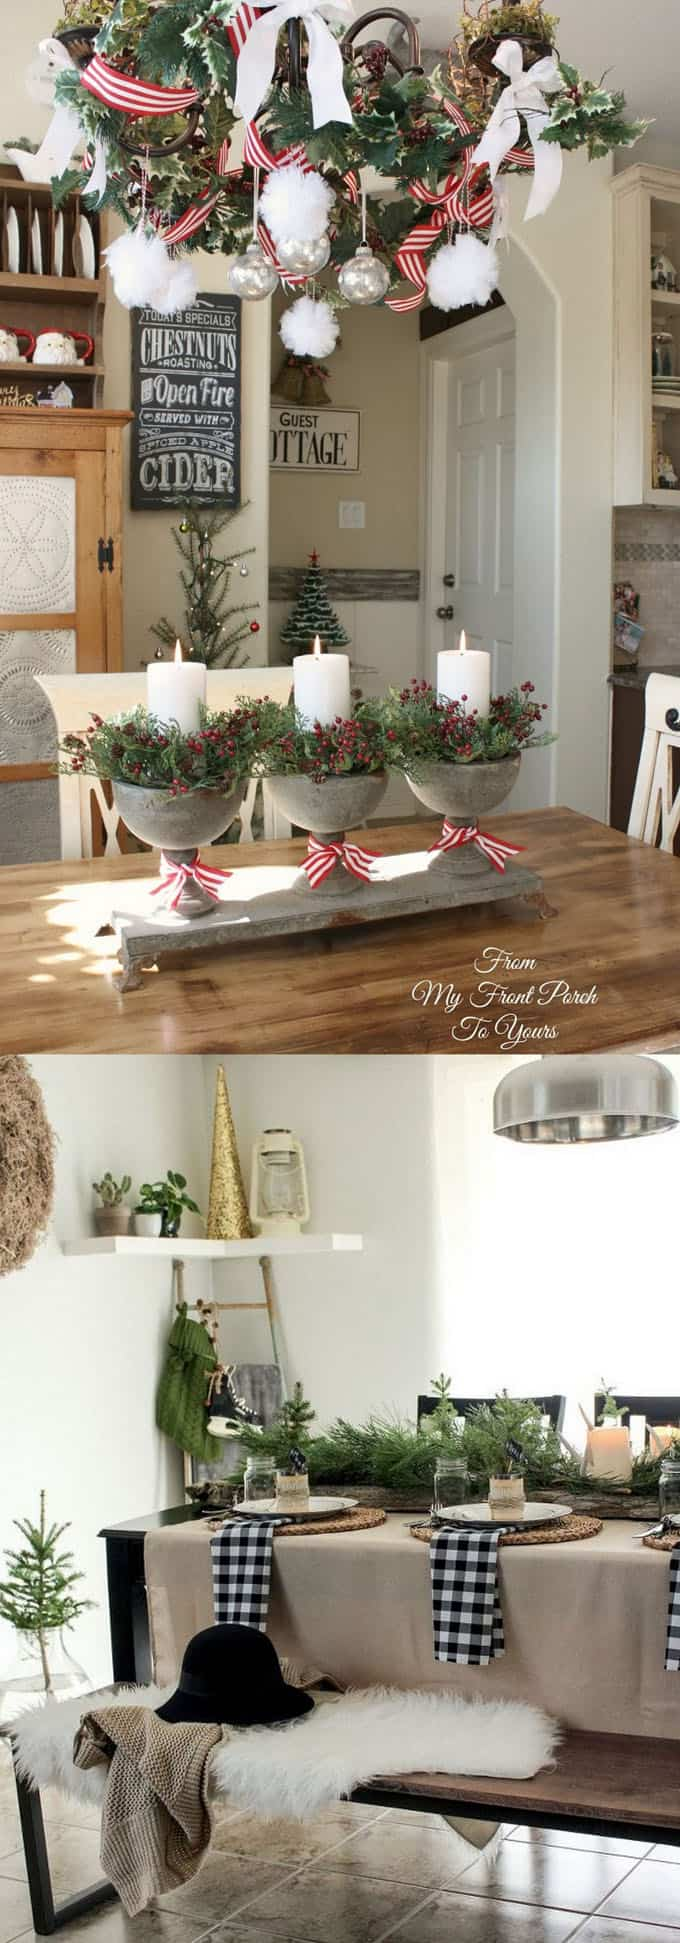 100 favorite christmas decorating ideas every room apieceofrainbow 2 - 100+ Favorite Christmas Decorating Ideas For Every Room in Your Home : Part 2